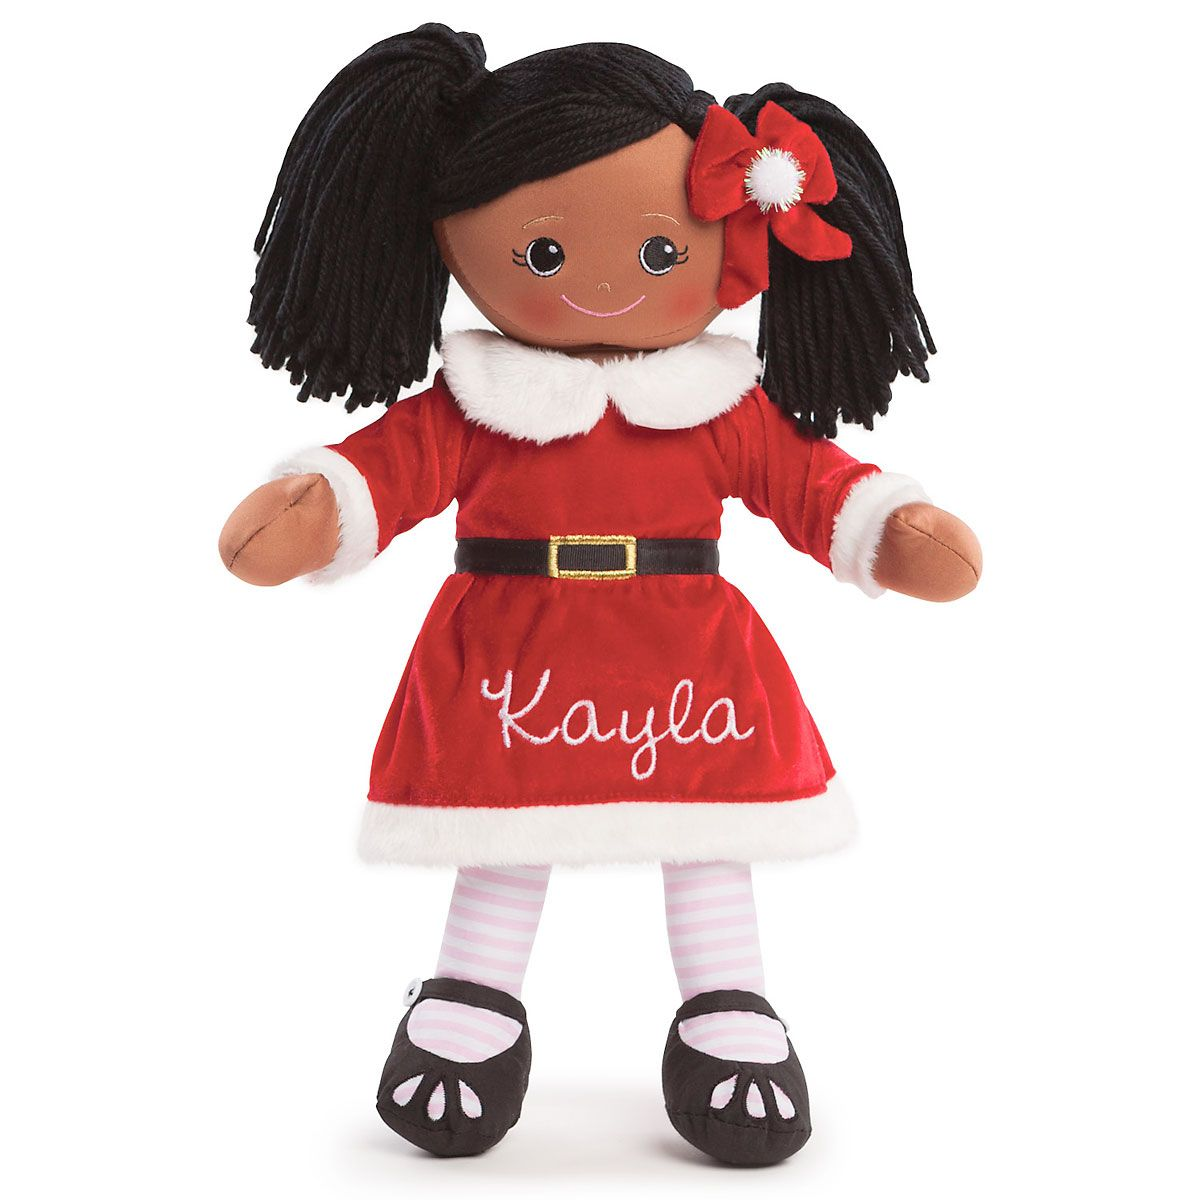 Personalized African American Rag Doll in Santa Dress